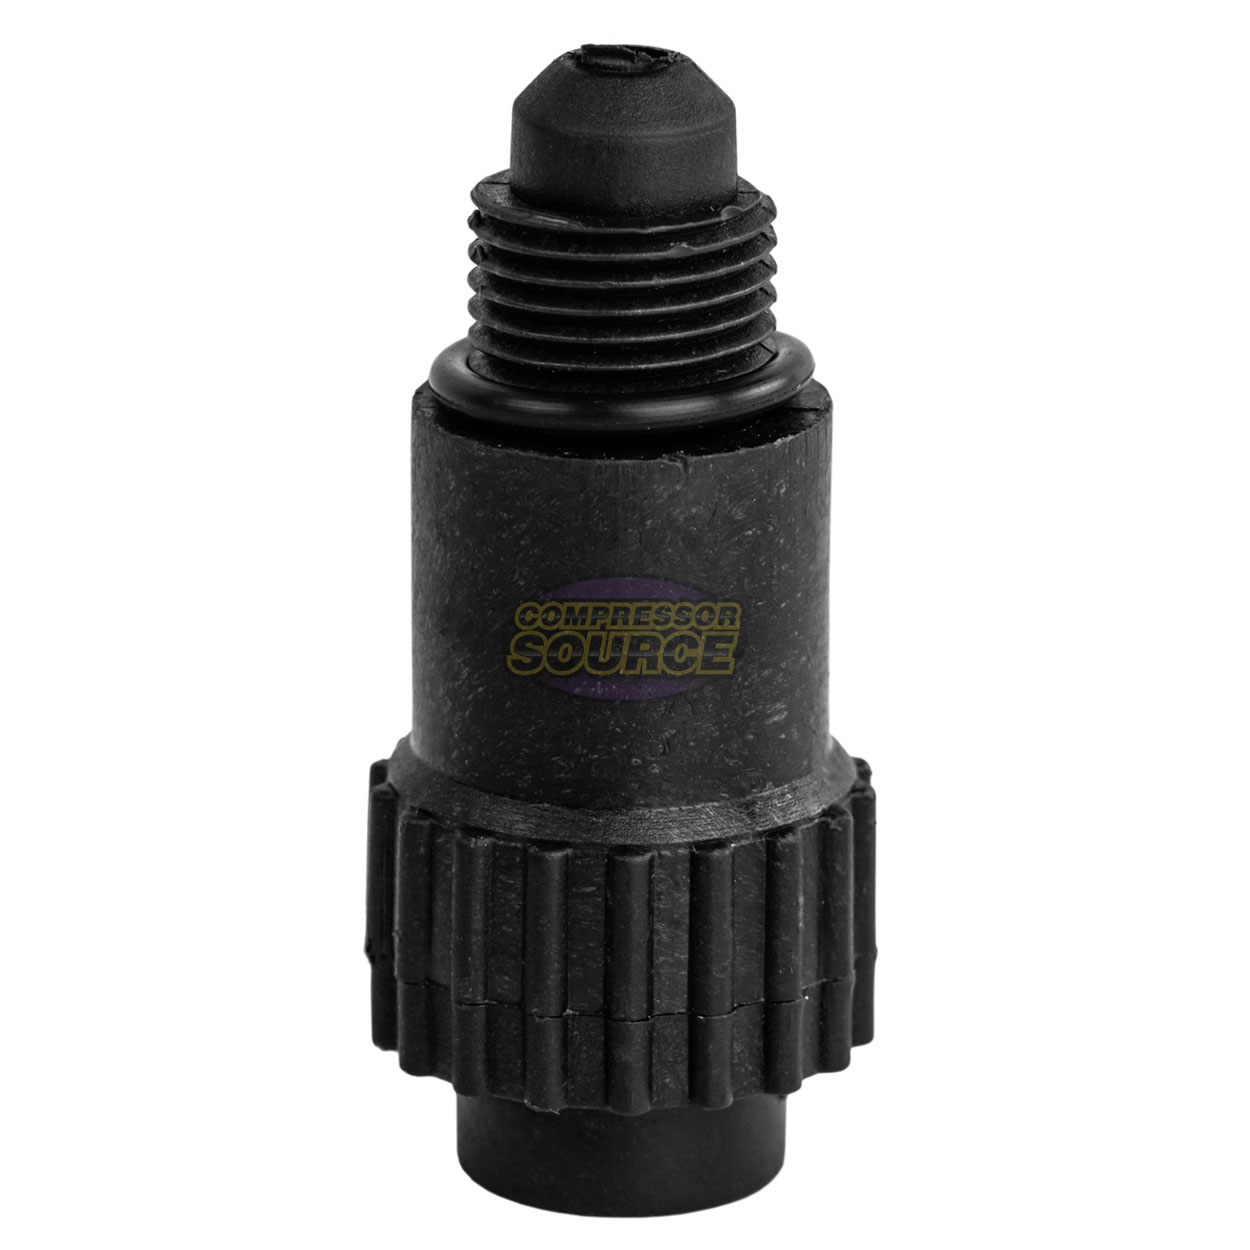 Details about Crankcase Oil Fill Breather Vent Cap Replacement For Common  Air Compressor Pumps